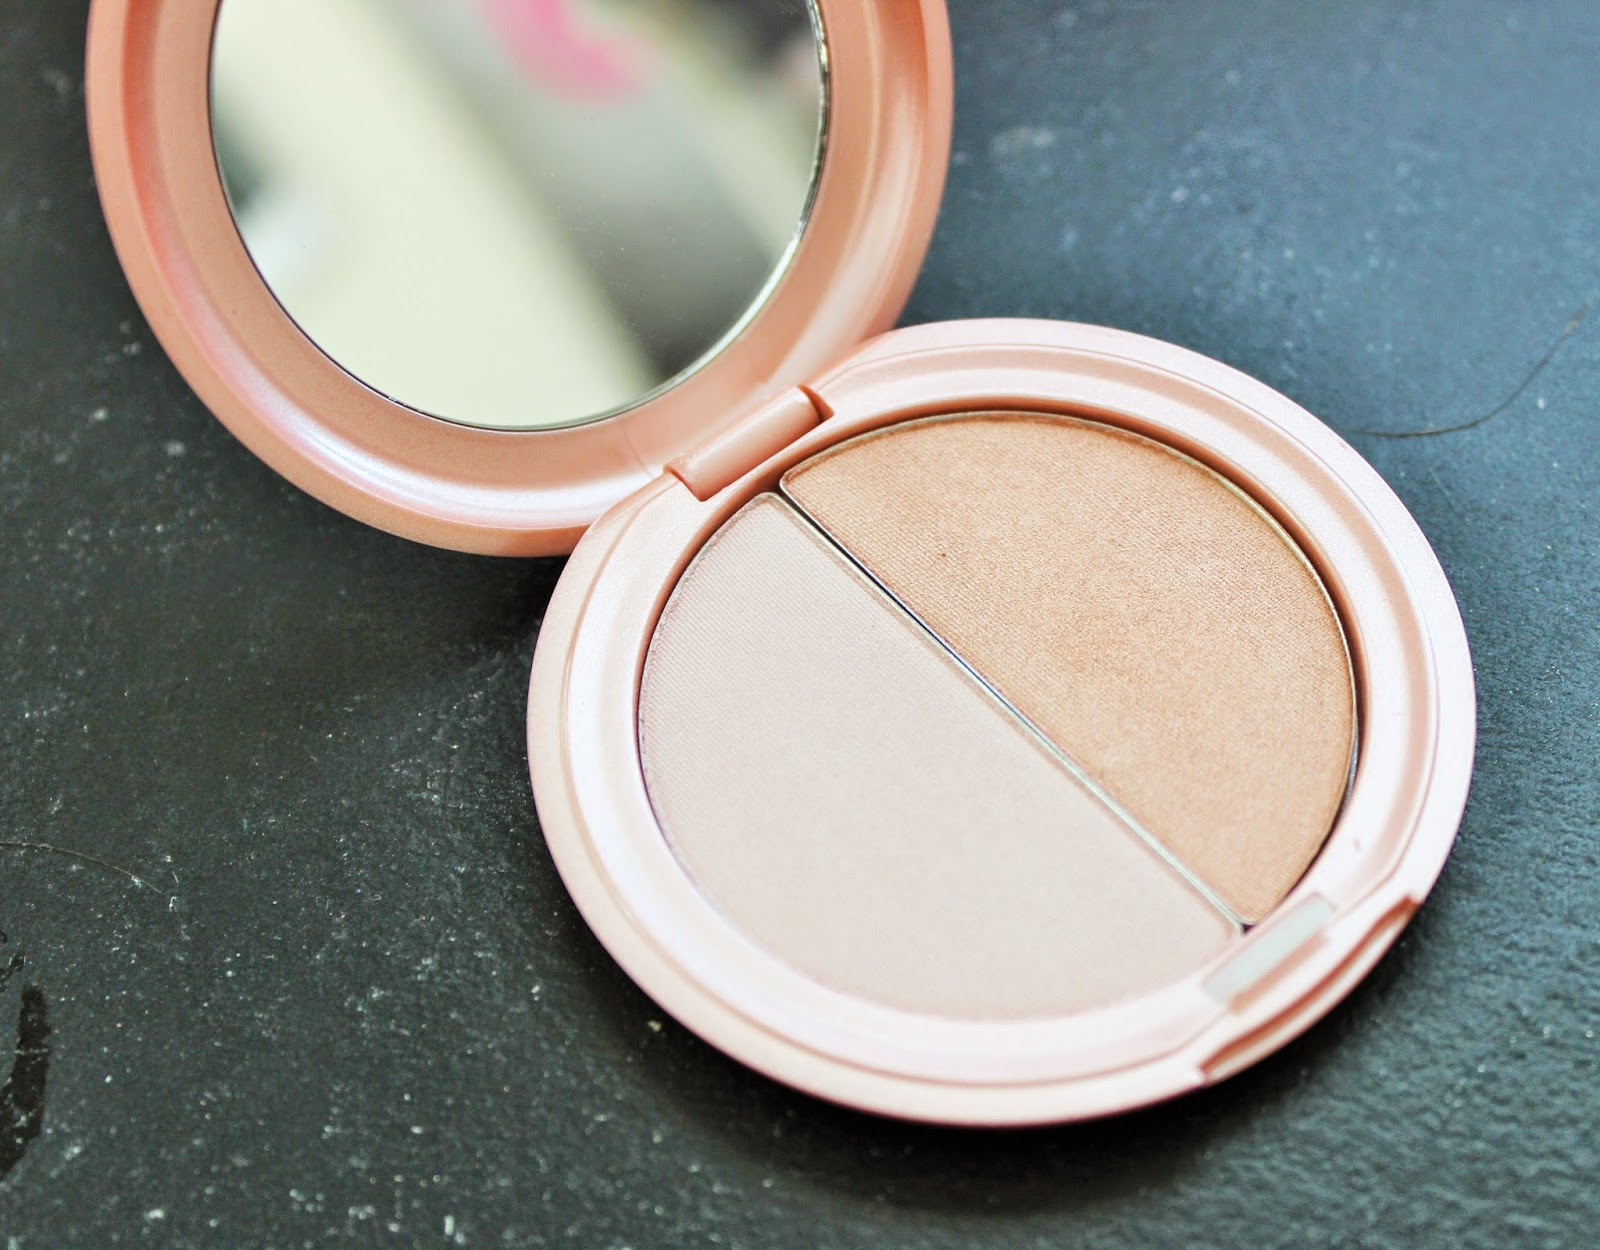 Stila Highlight Kitten Powder Review Swatch